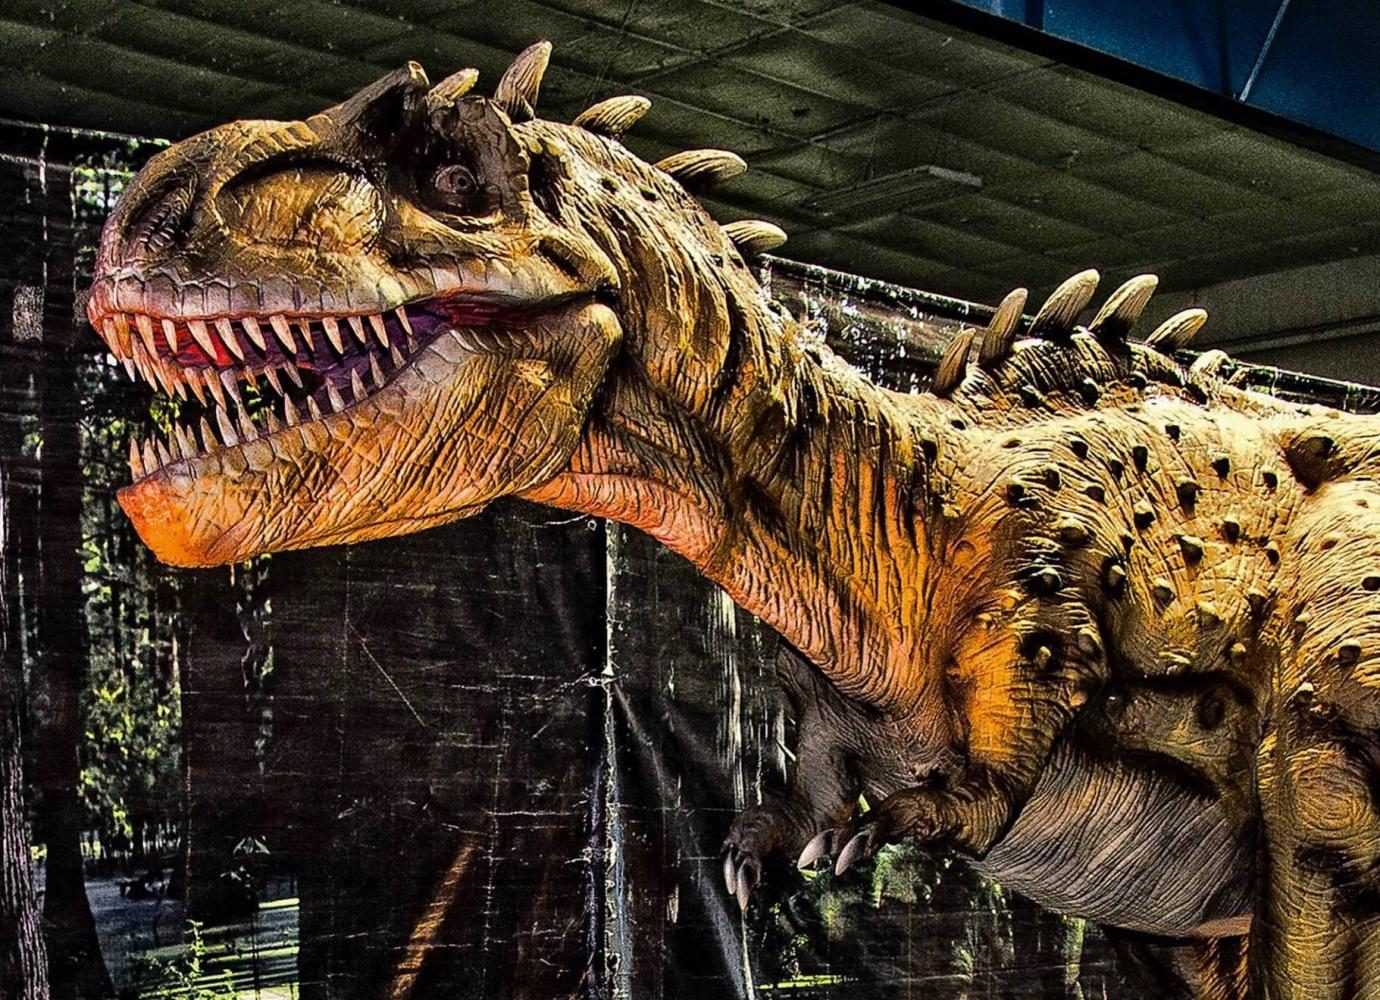 Dinosaurs come back to life at the El Paso County Coliseum